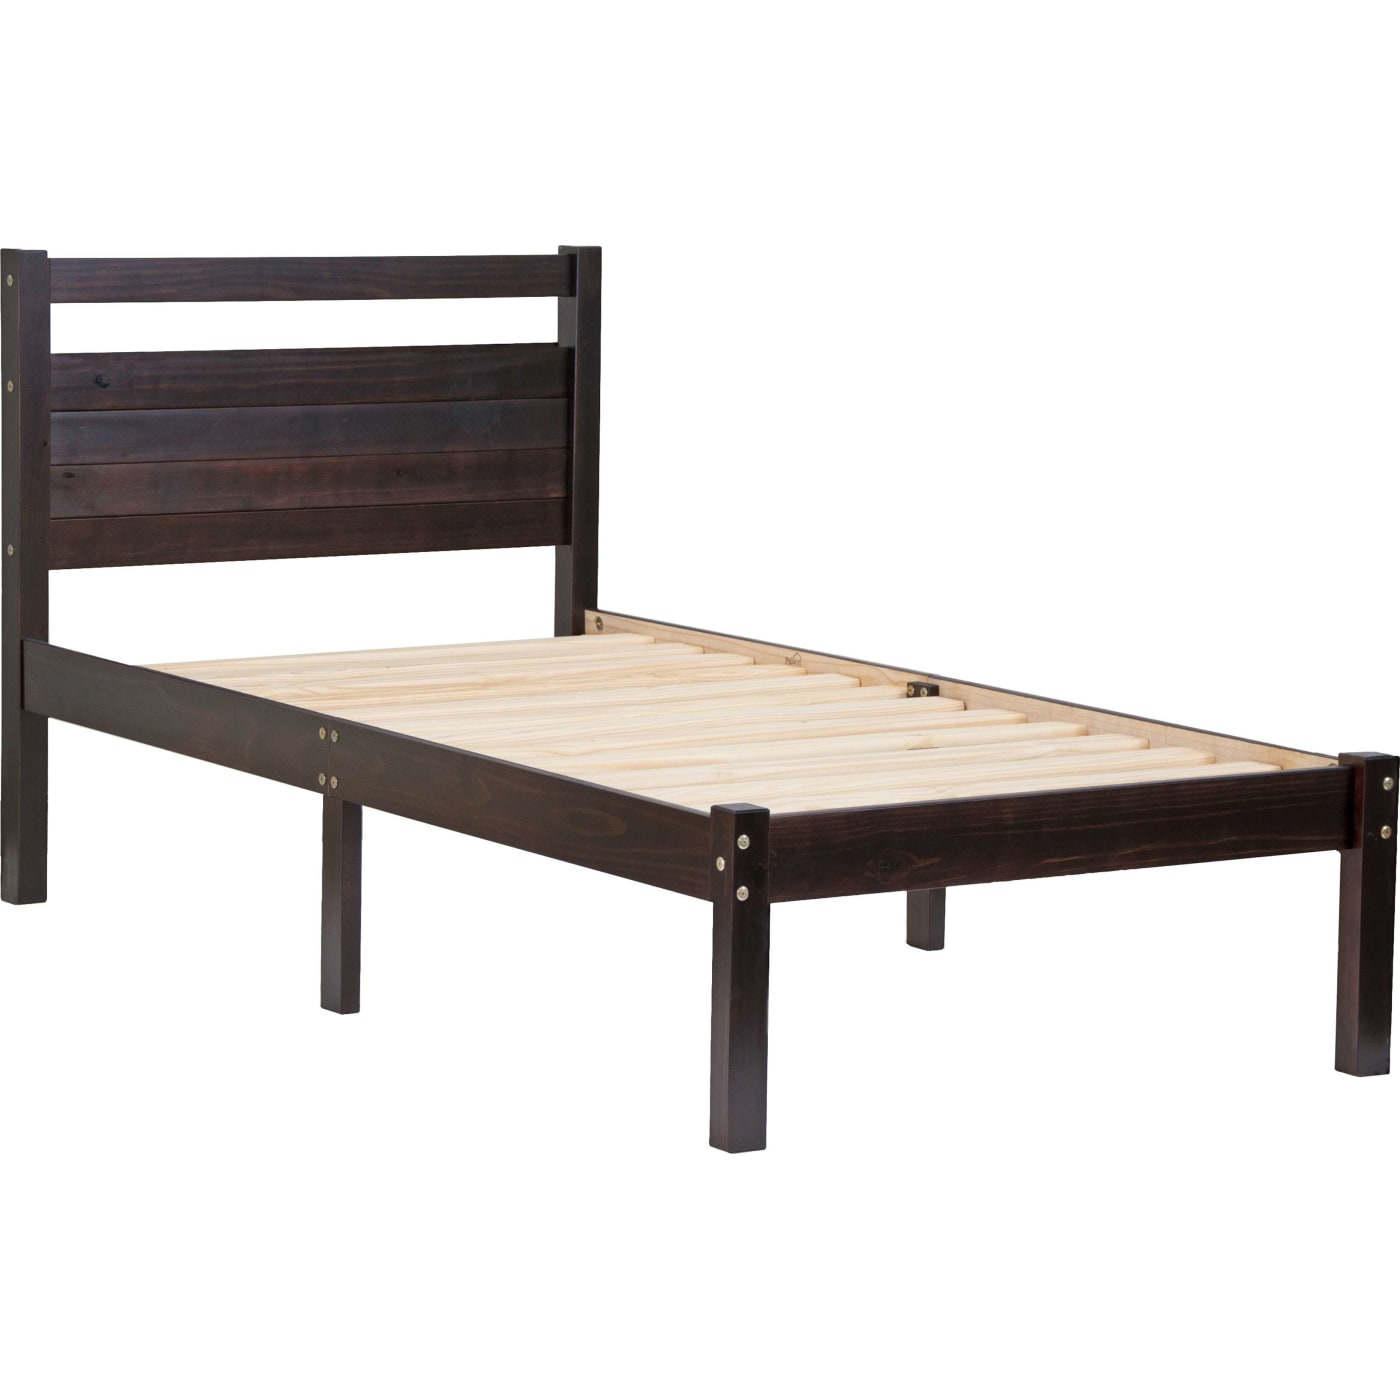 Bronx Bed In A Box, Twin Size Platform Bed, 100% Solid Wood, Java